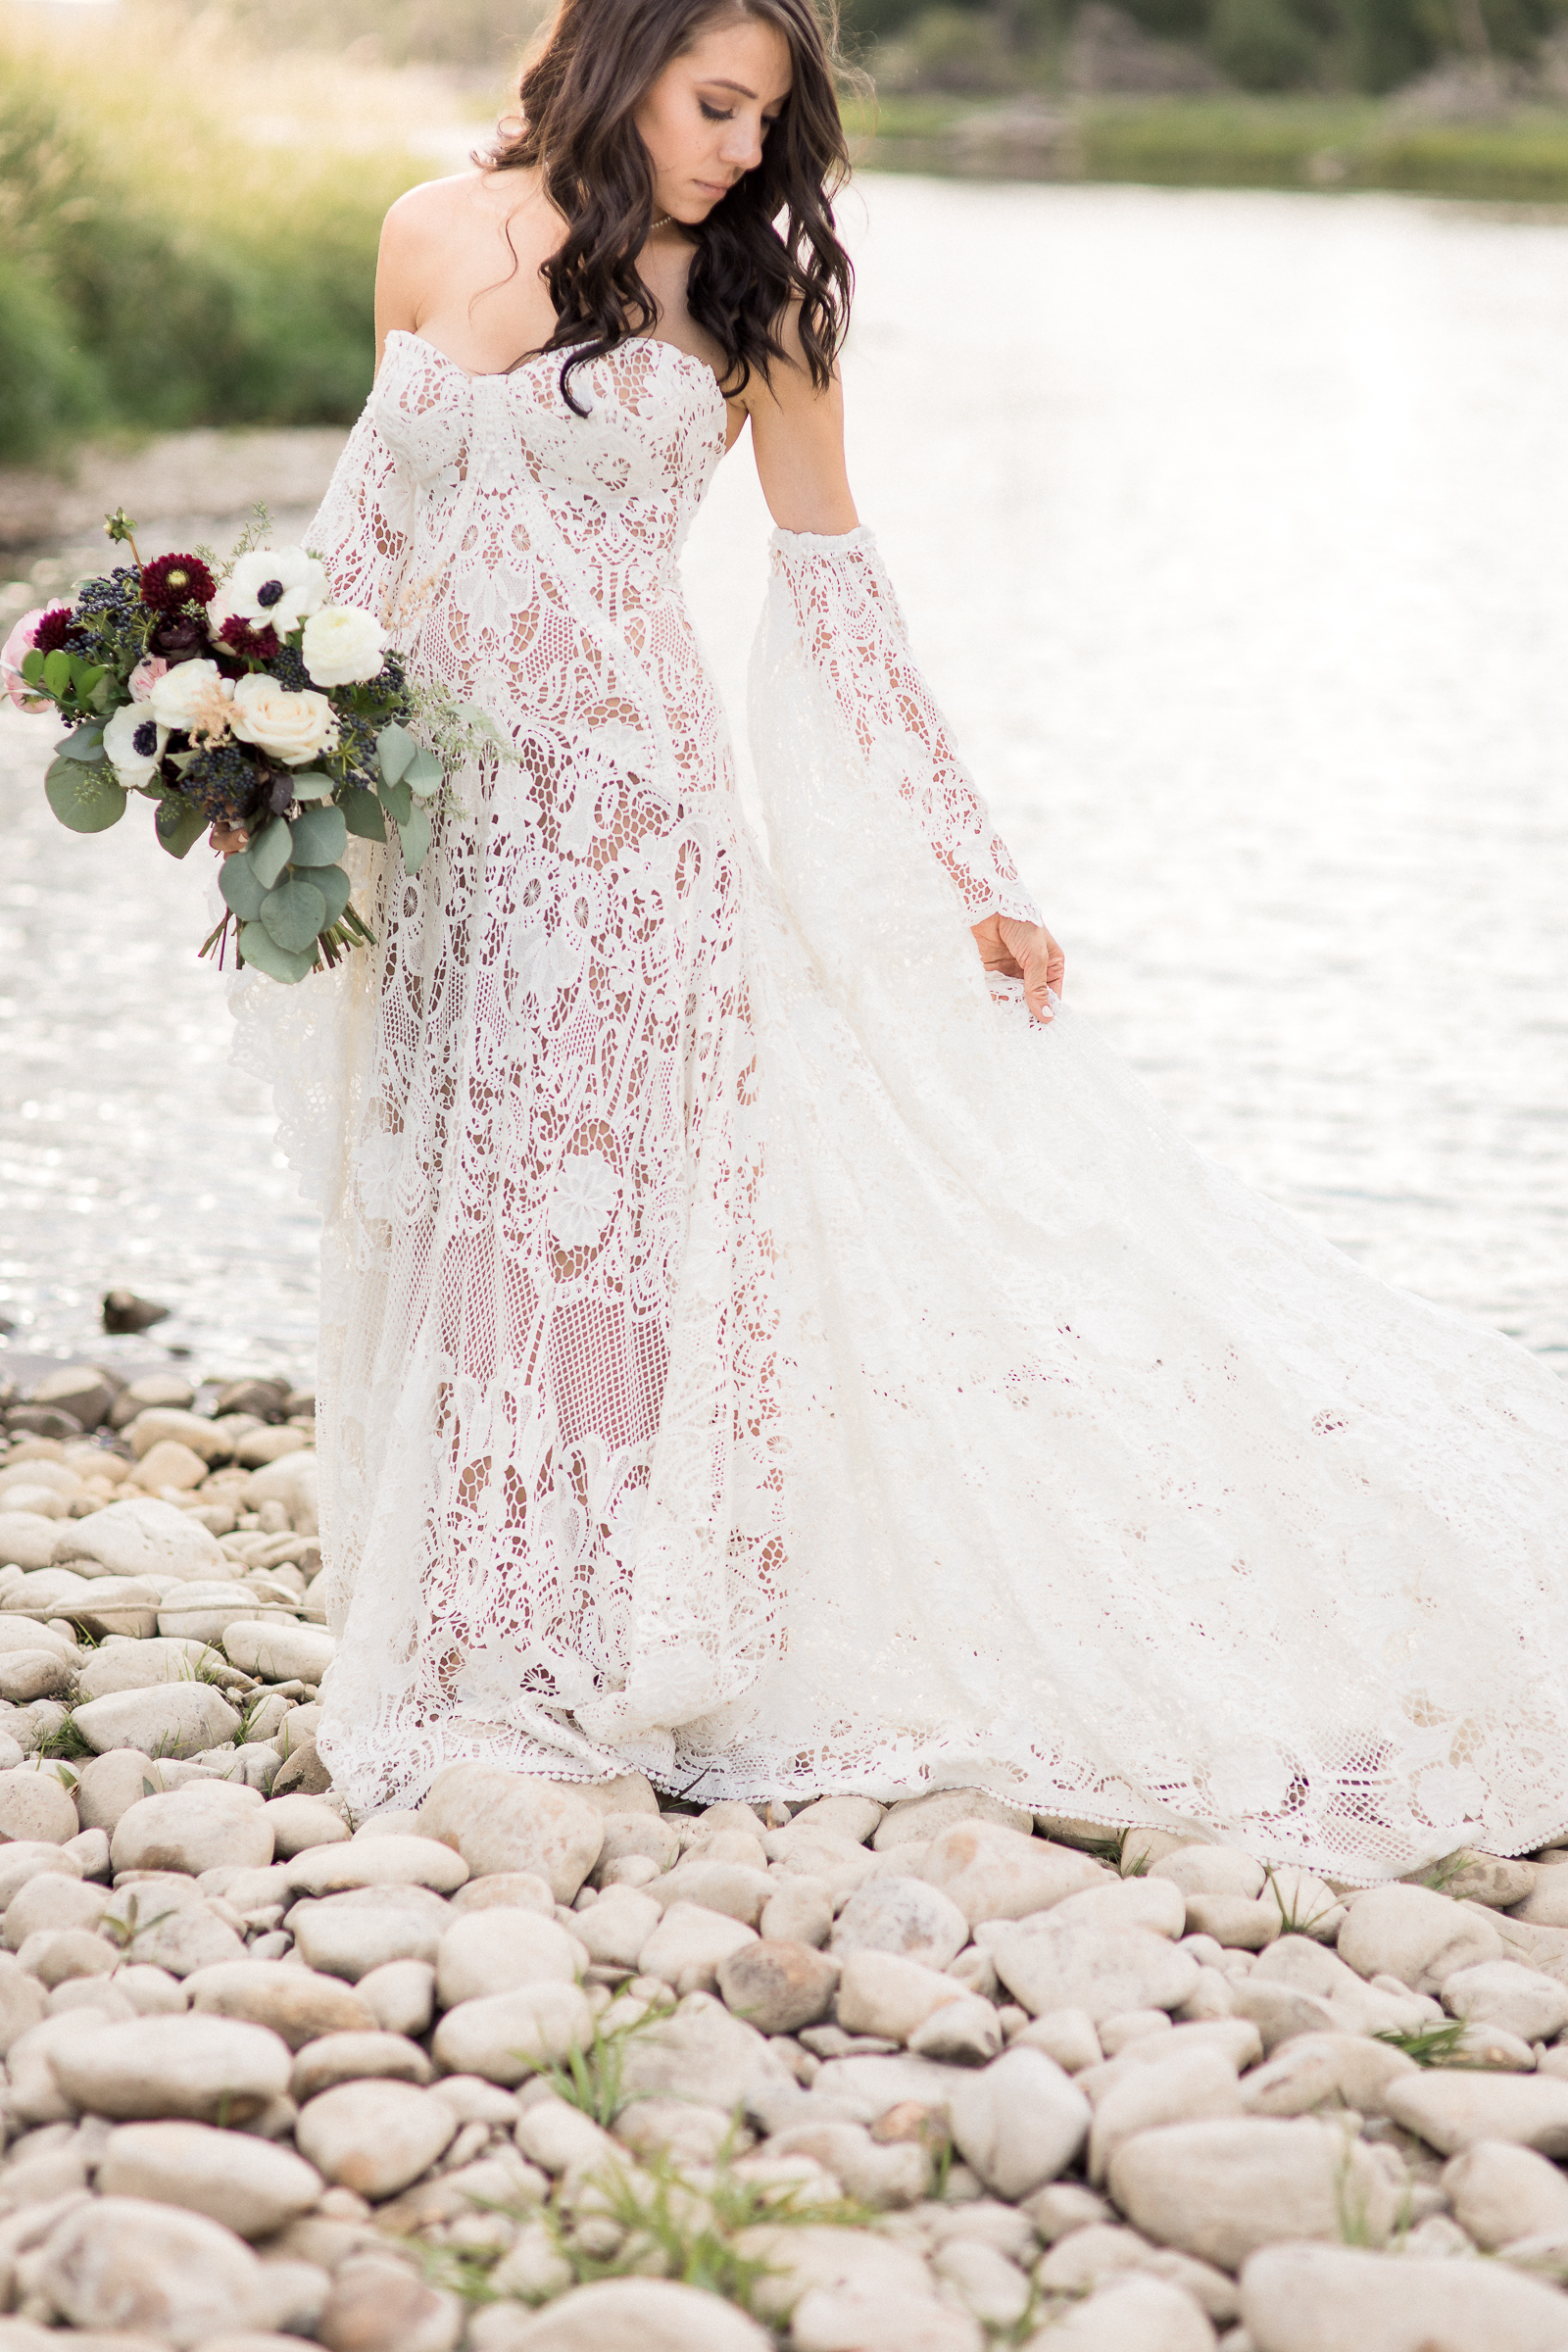 White strapless lace boho wedding gown